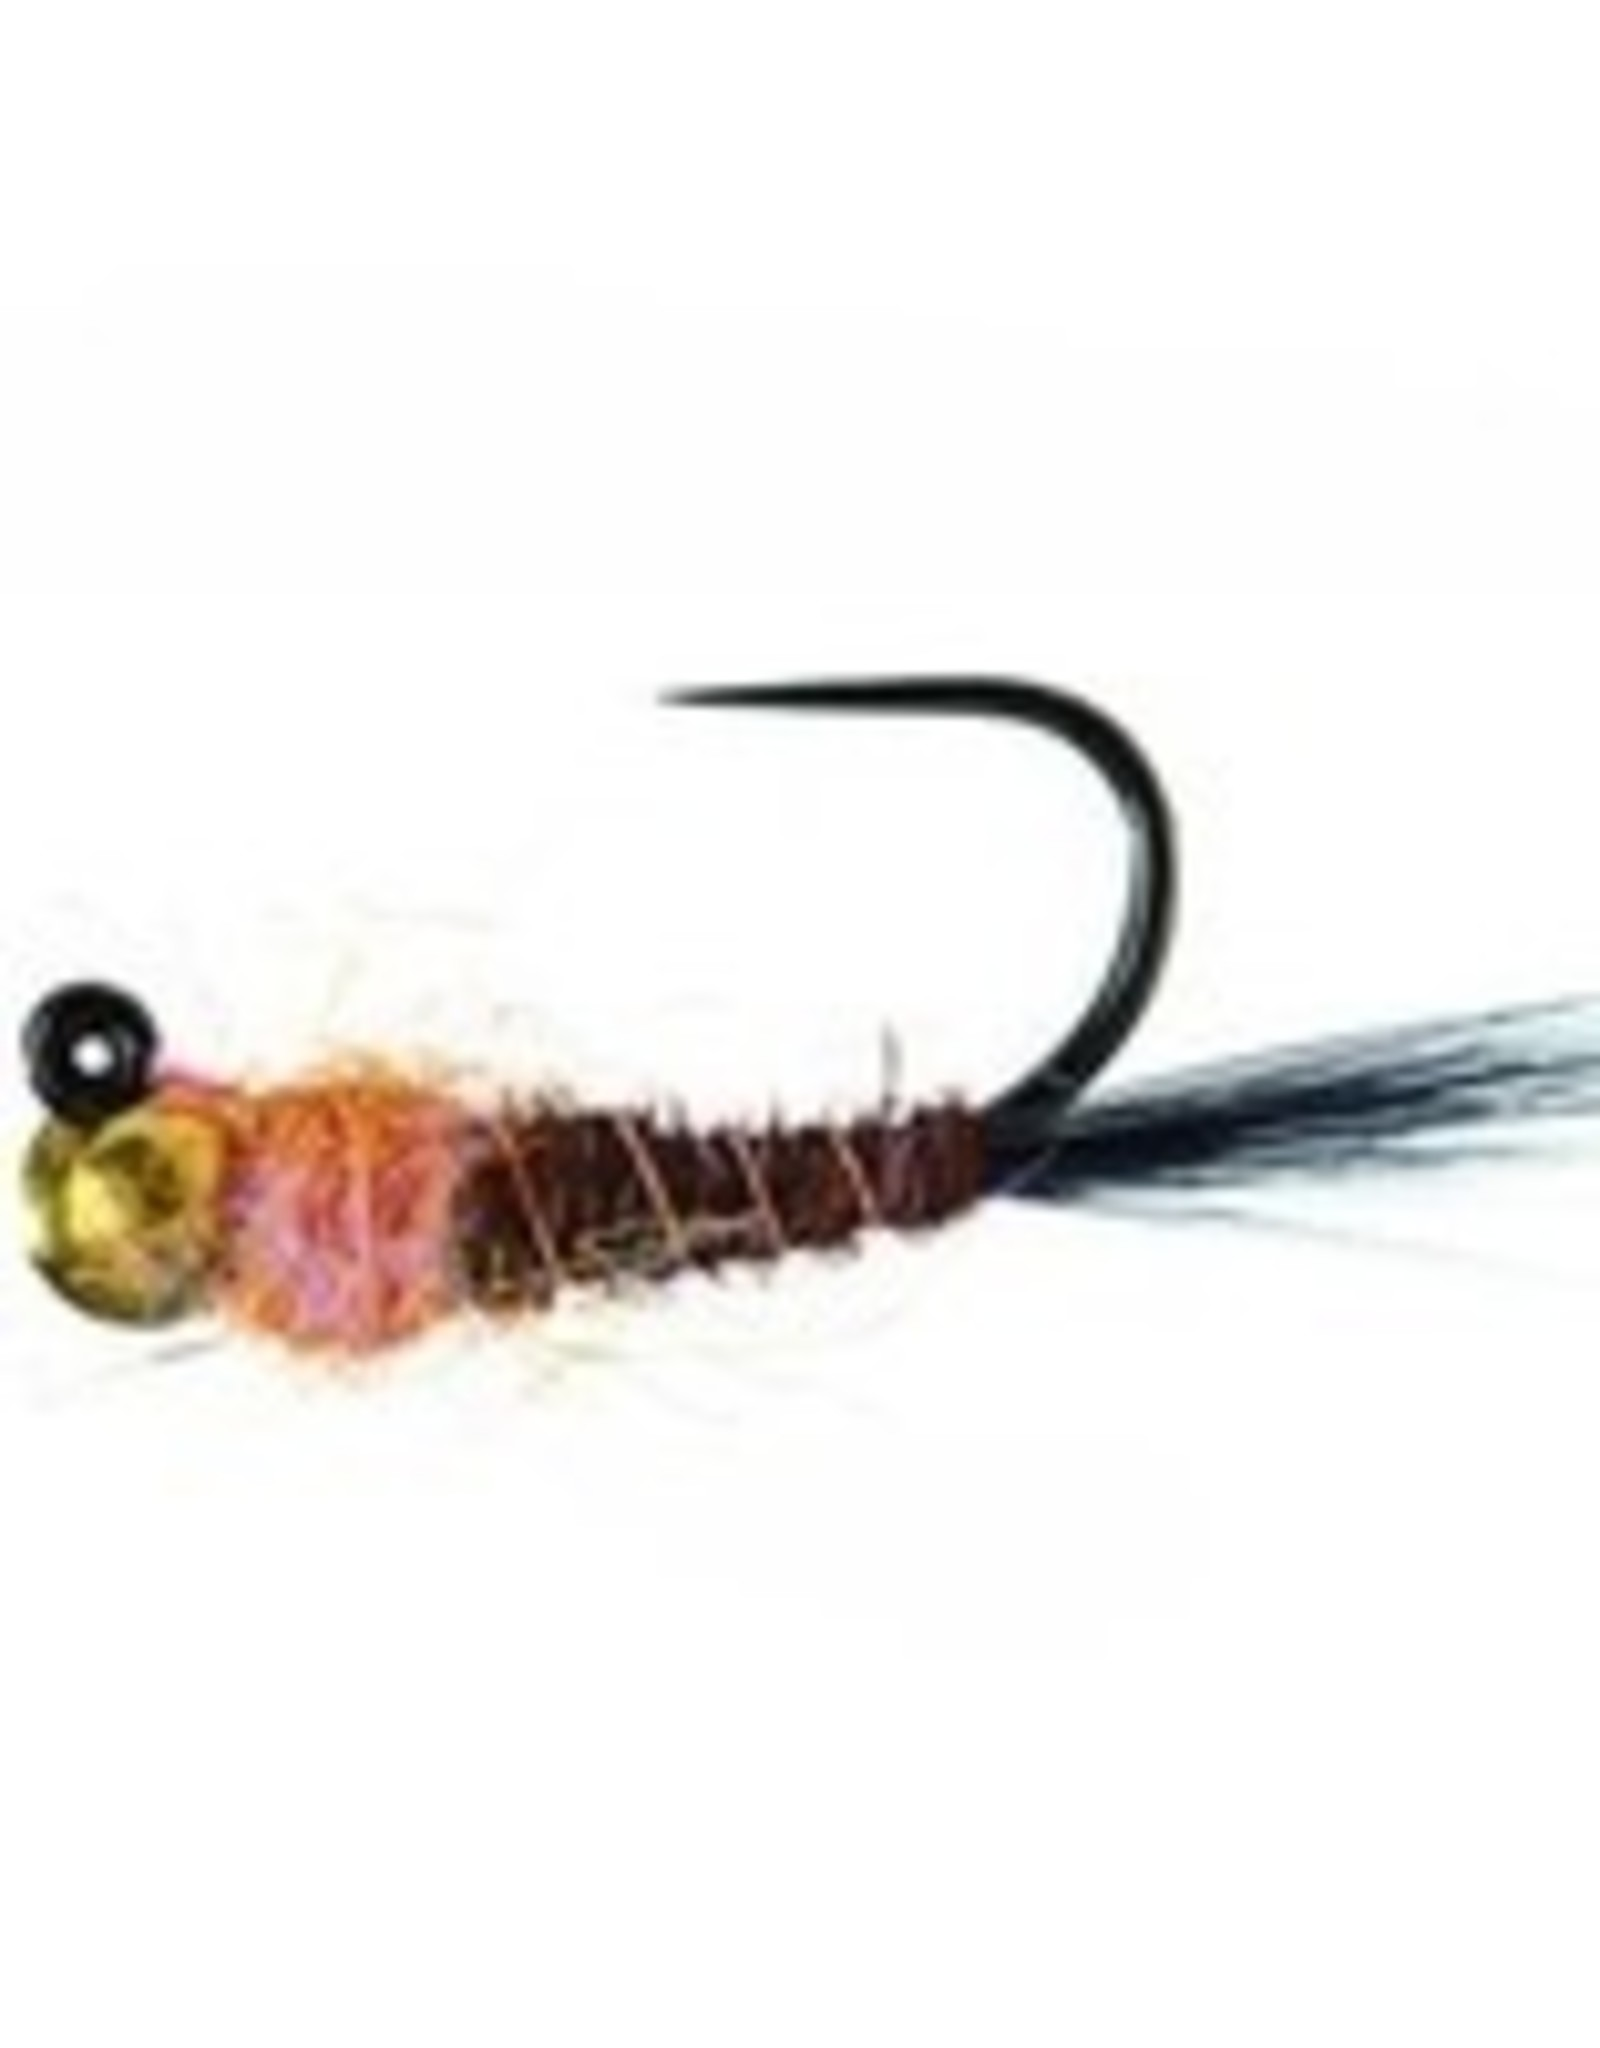 Egan's Frenchie Jig Tungsten (3 Pack)